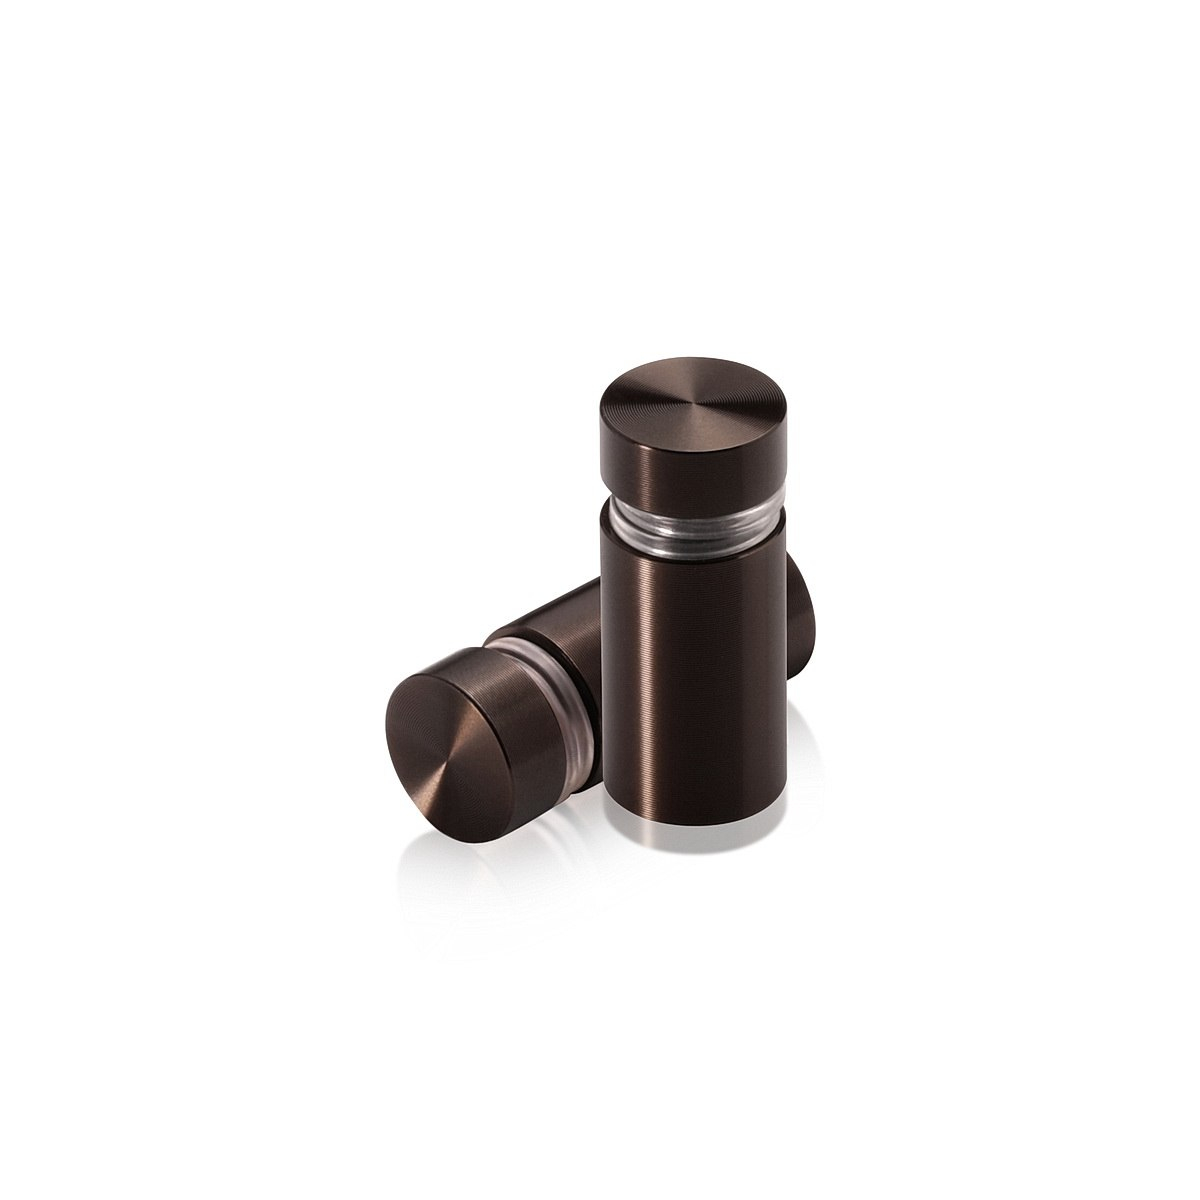 1/2'' Diameter X 3/4'' Barrel Length, Aluminum Flat Head Standoffs, Bronze Anodized Finish Easy Fasten Standoff (For Inside / Outside use) Tamper Proof Standoff